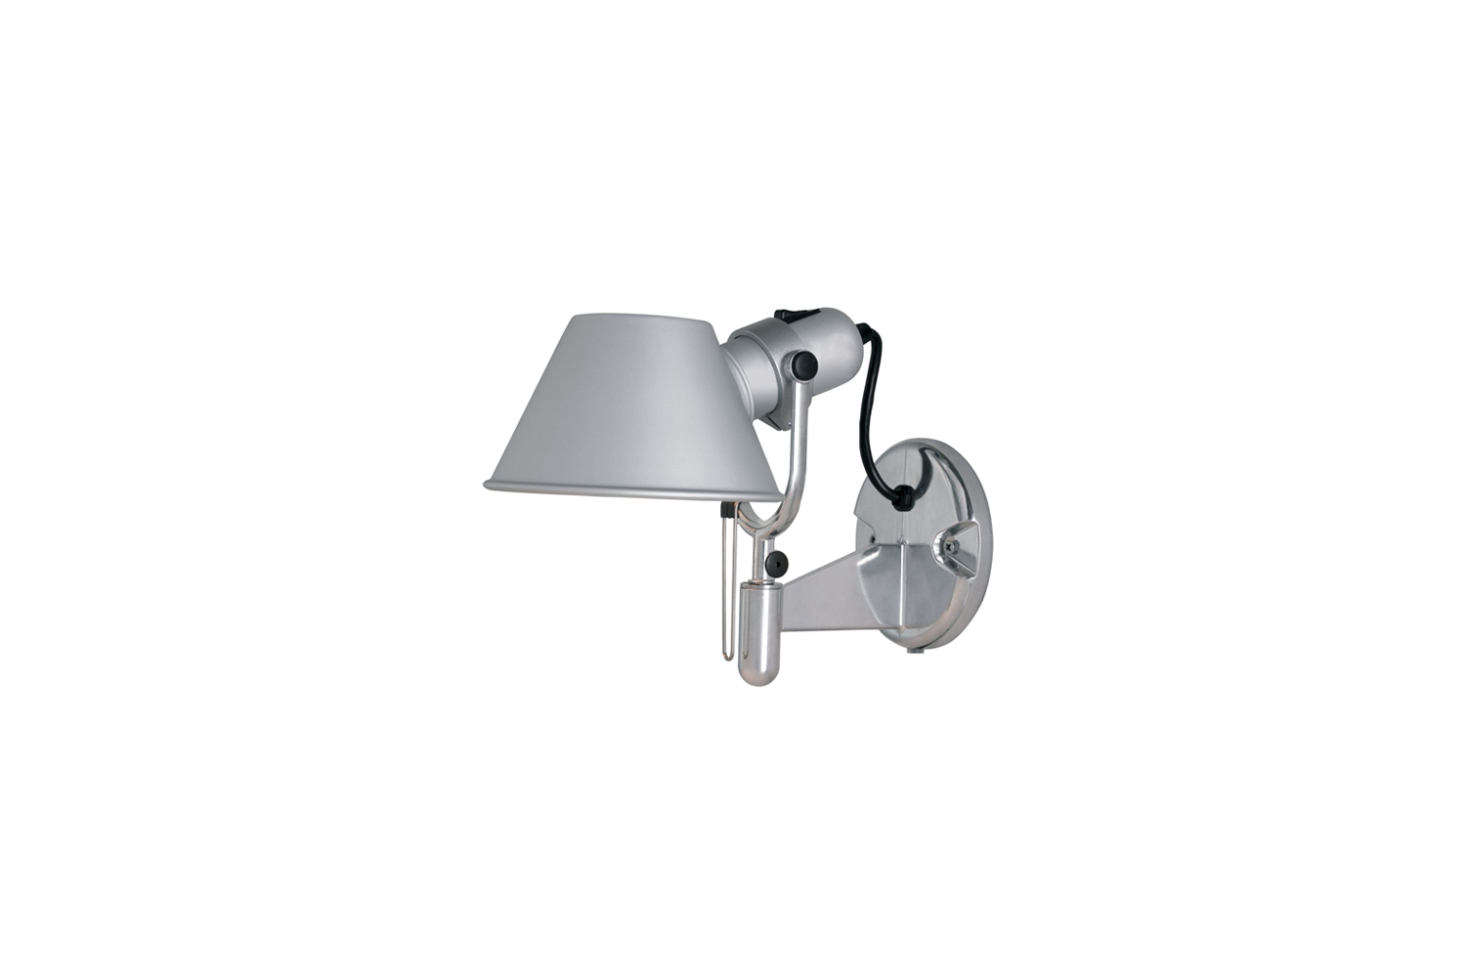 The Artemide Tolomeo Wall Spot Light by Michele De Lucchi and Giancarlo Fassina is $175 from Design Within Reach.